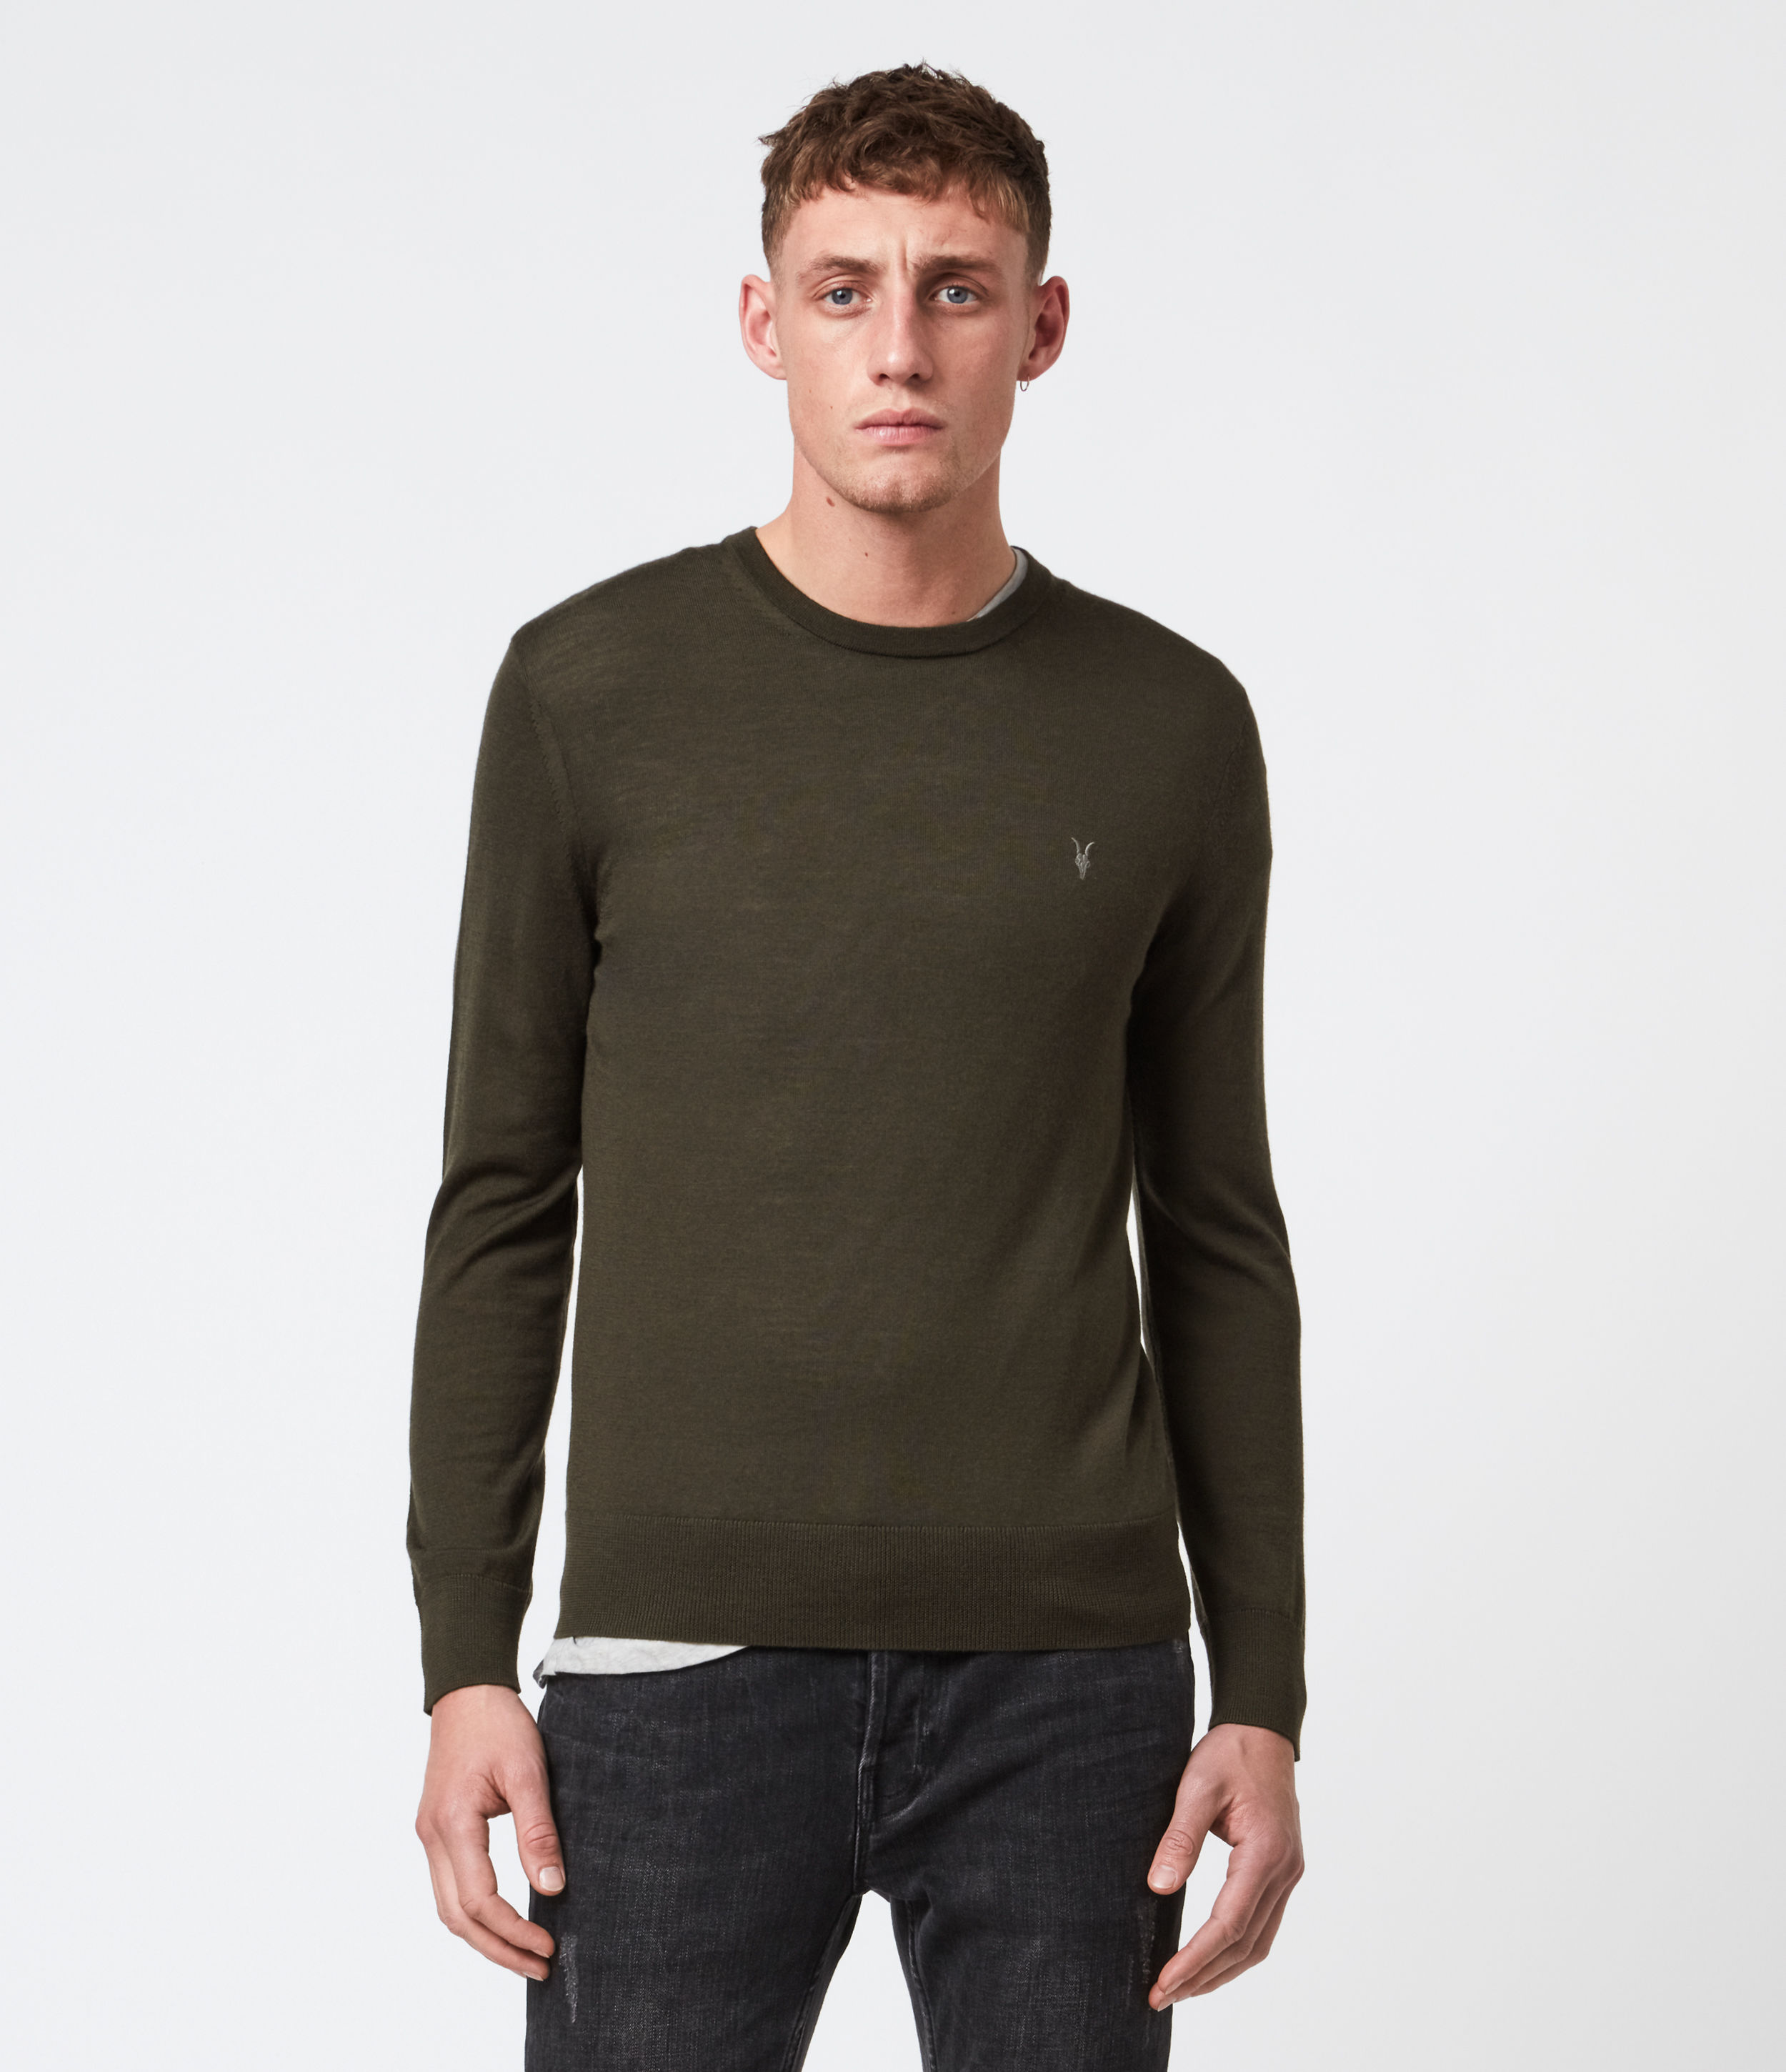 AllSaints Men's Merino Wool Lightweight Mode Crew Jumper, Green, Size: XS